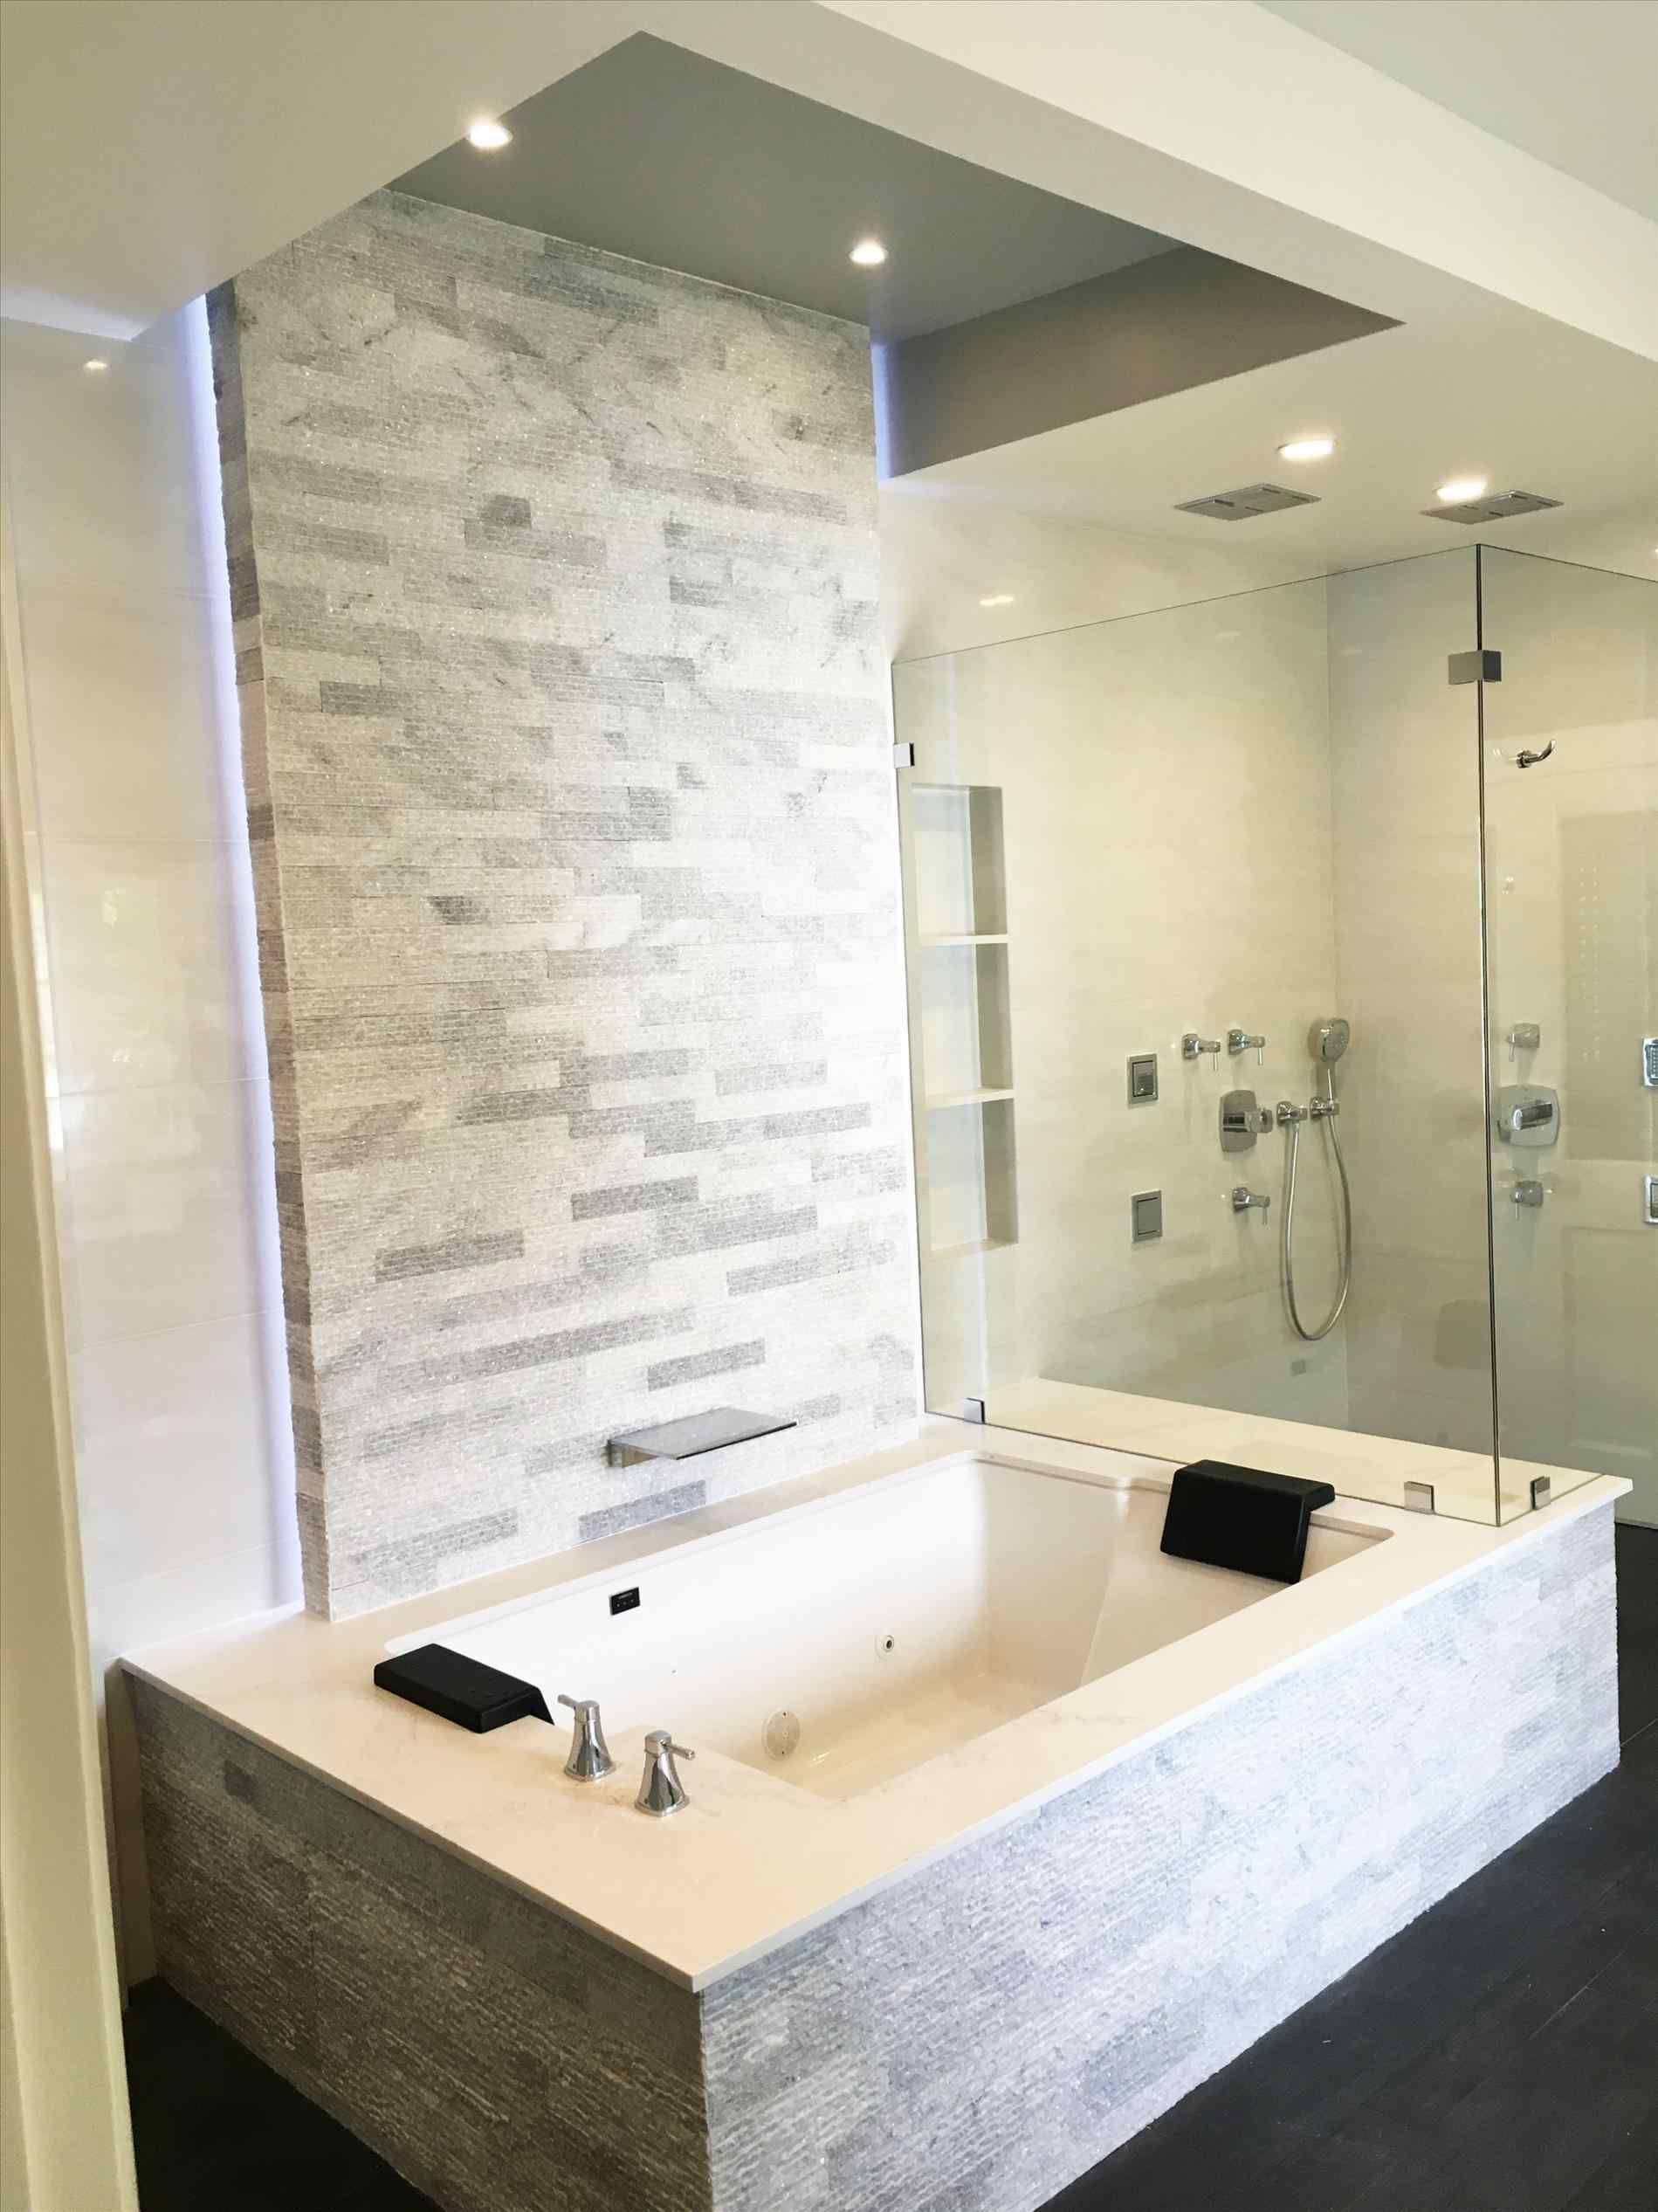 Japanese Soaking Tubs For Small Bathrooms Breakpr Kang Her Japanese Soaking Tub Small Japanese Soaking Tubs Shower Bath Combo